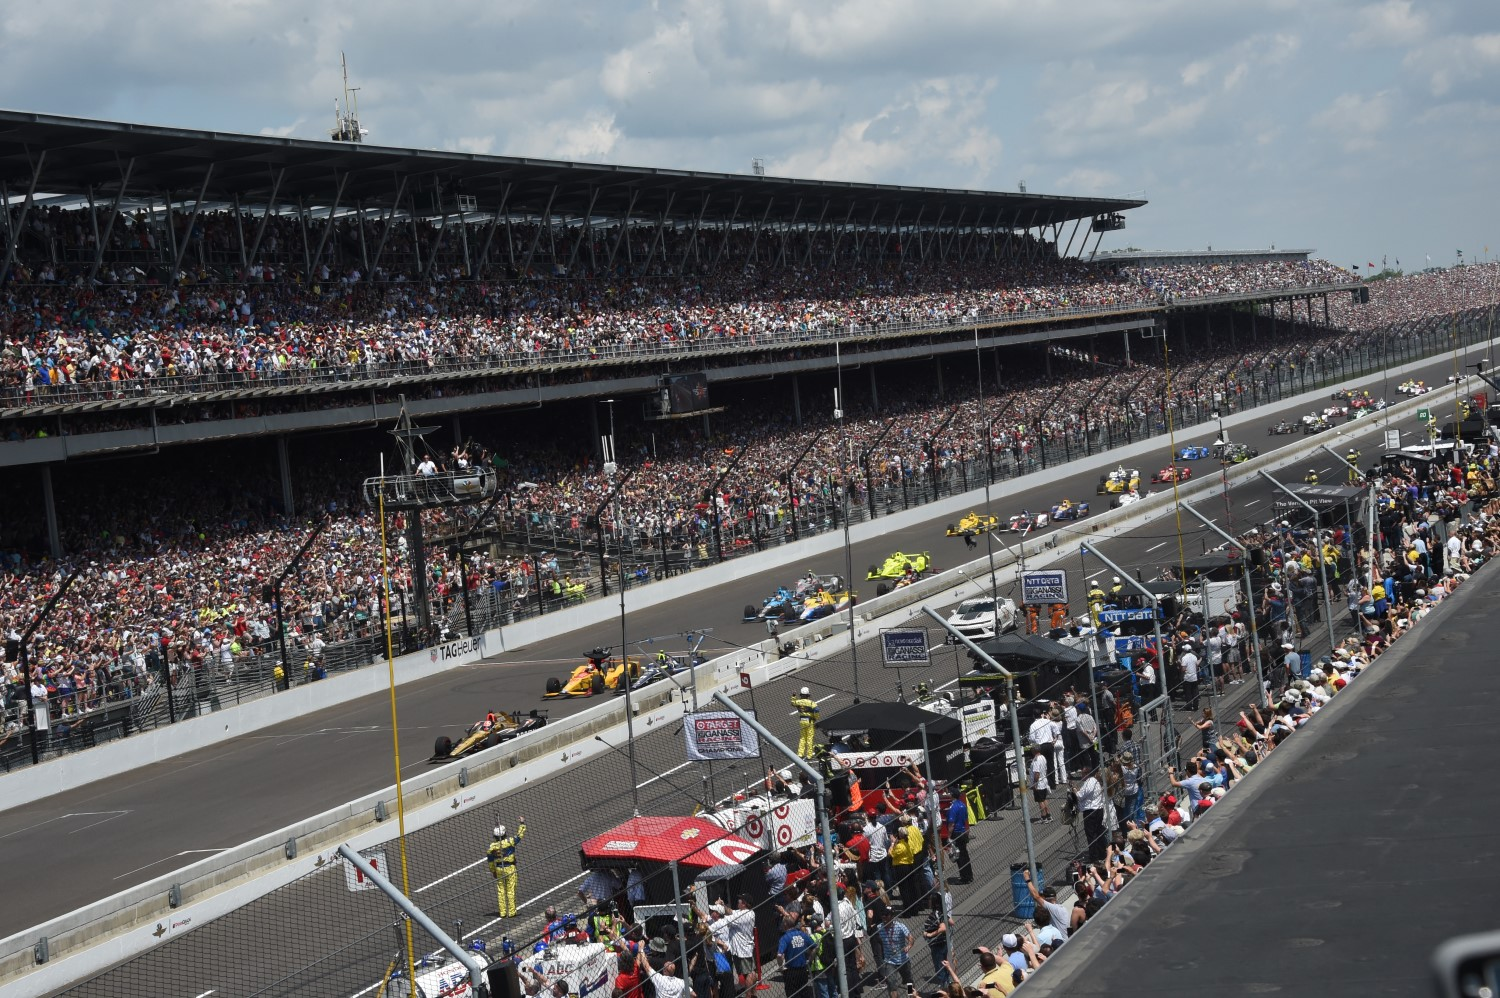 A record 350,000 attended last year's Indy 500